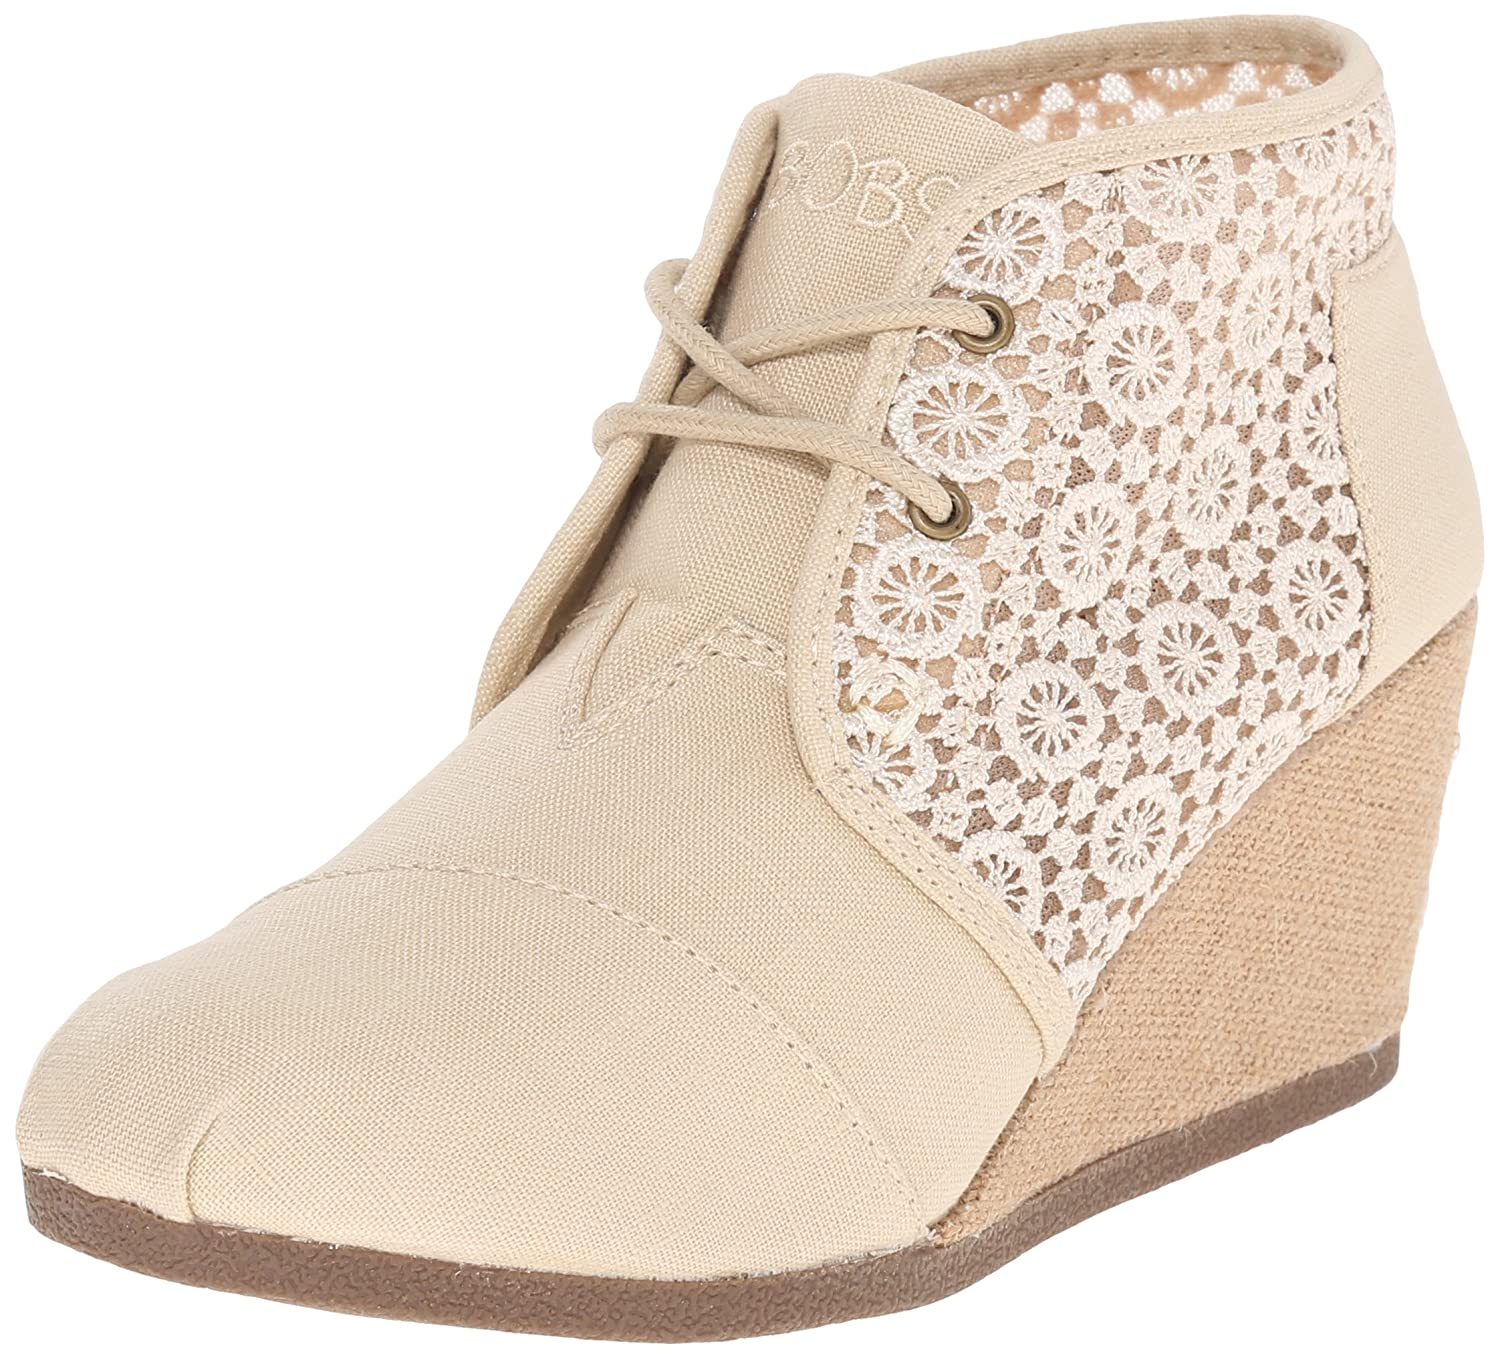 Skechers BOBS from Women's High Notes Wedge Boot B016R97N3O 7.5 B(M) US|Natural Woven